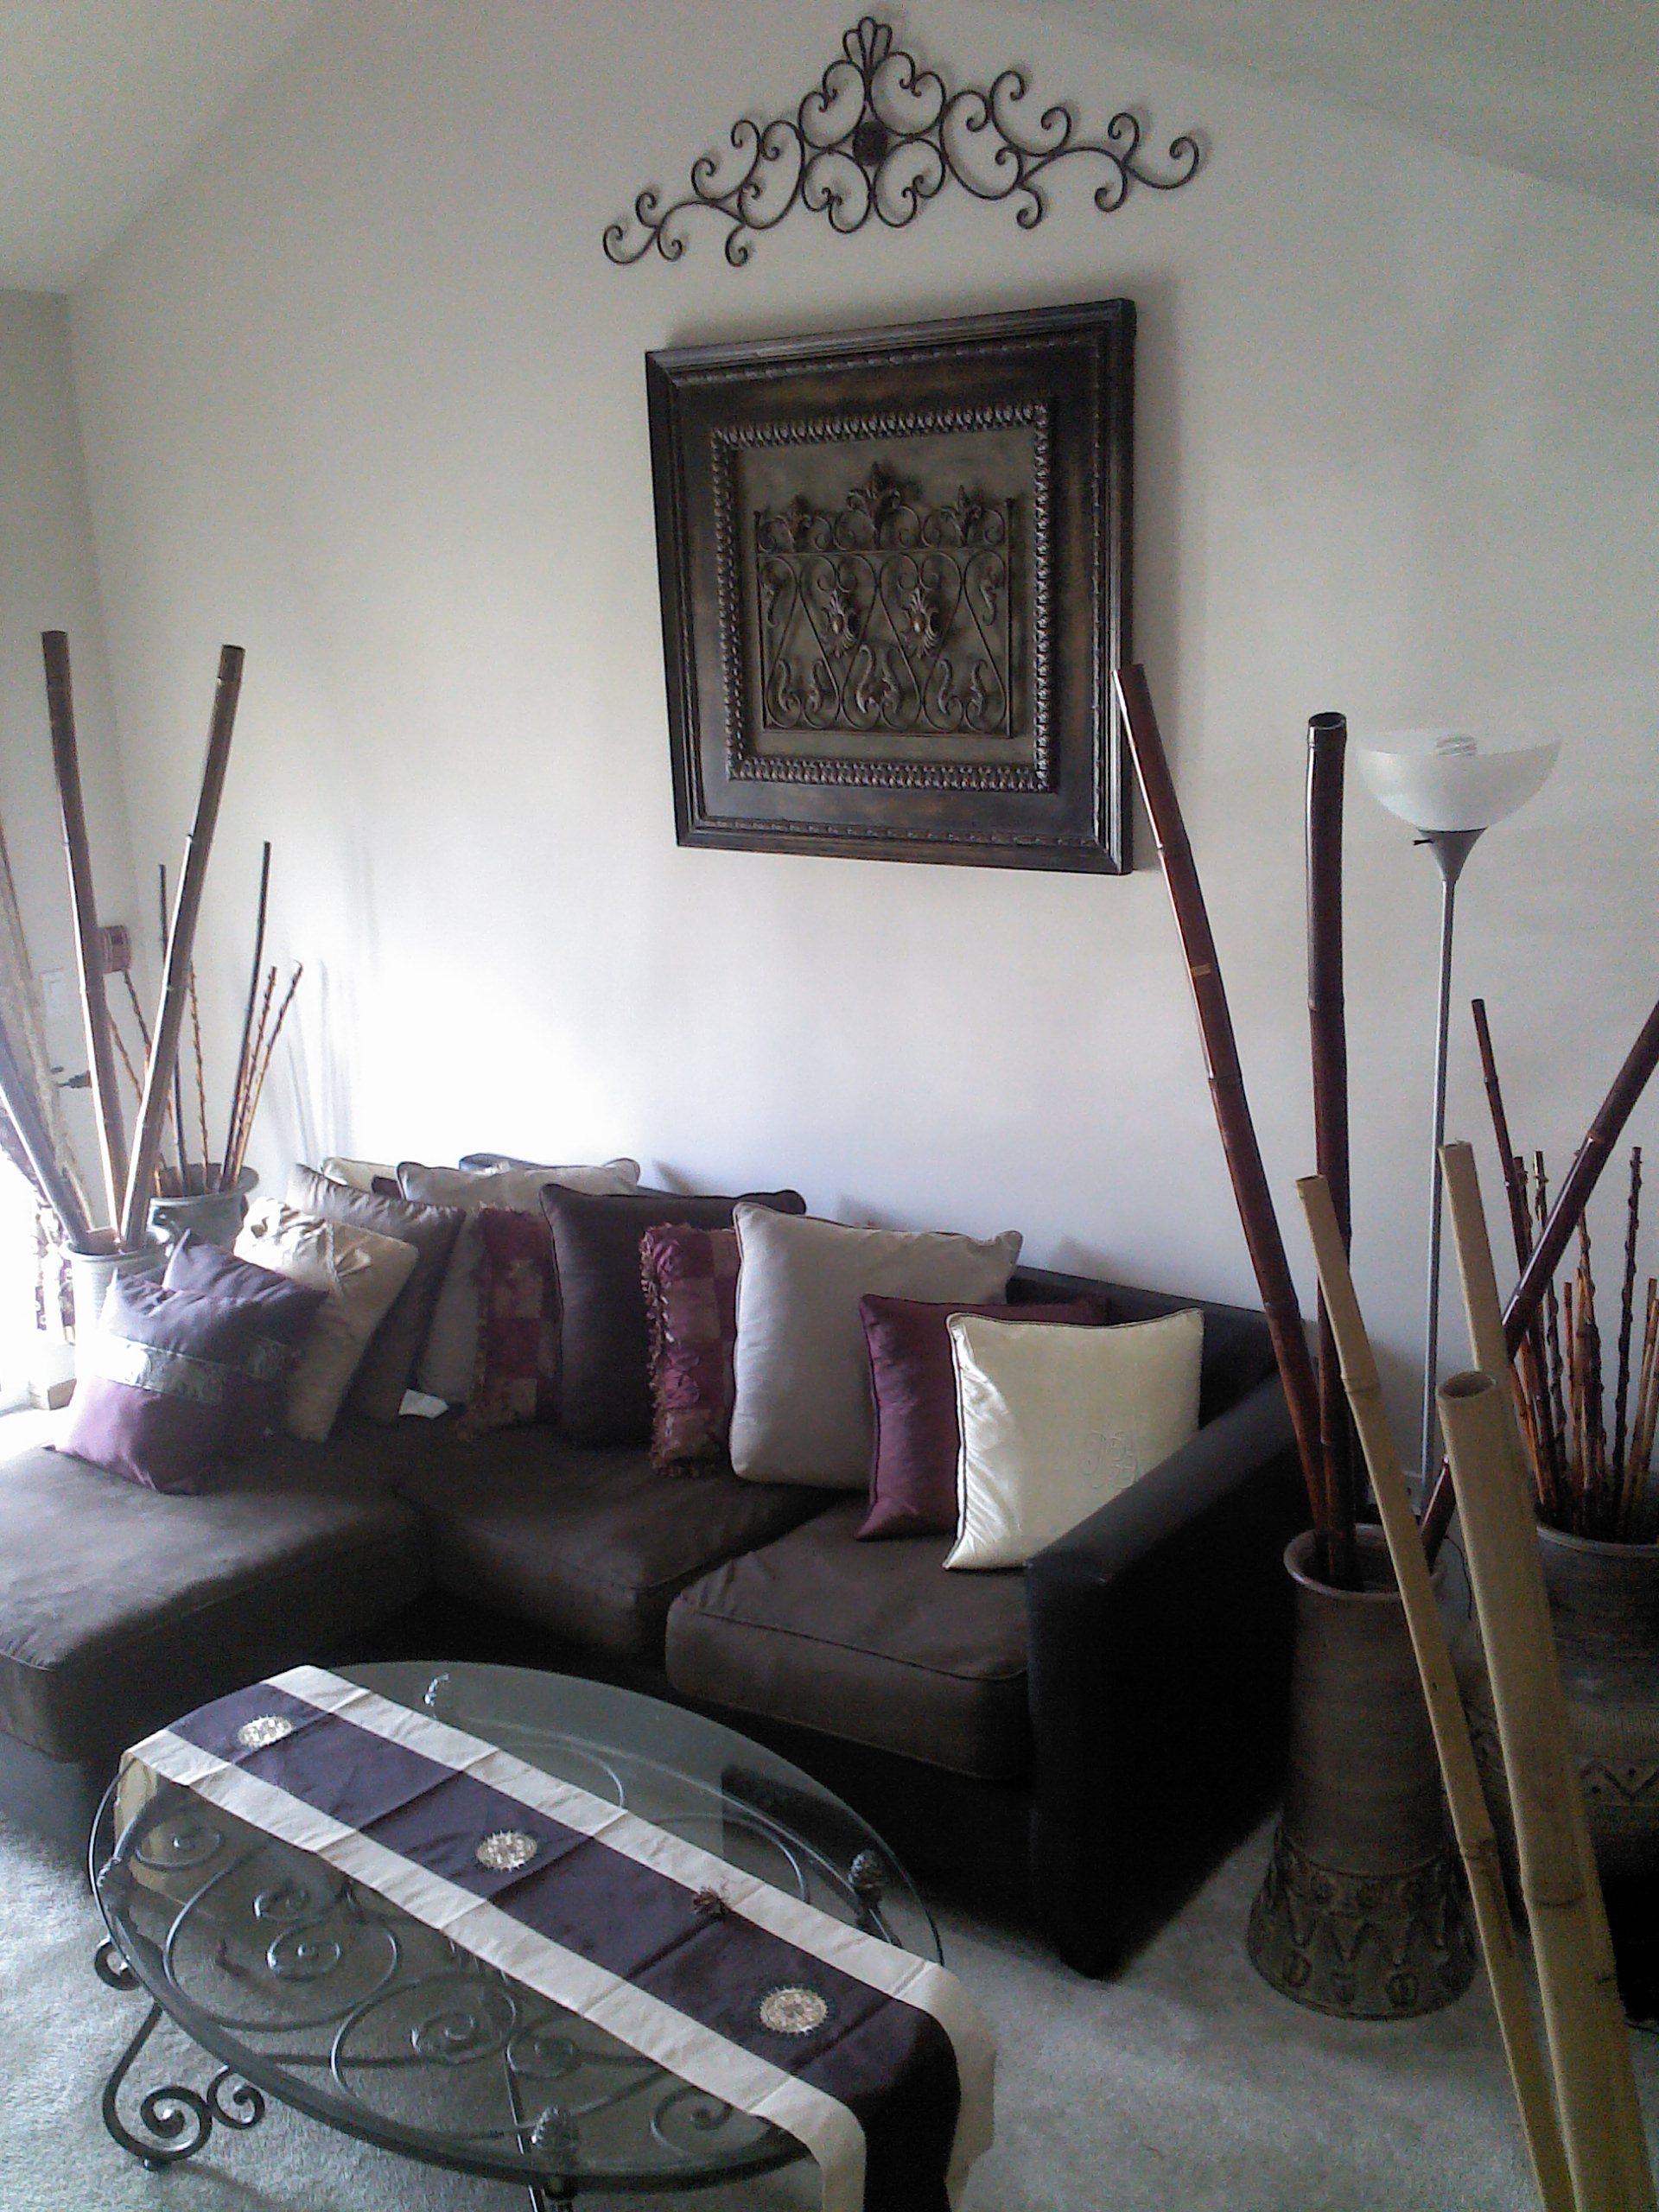 Living Room Wrought Iron Scroll Wall Decor Vases, Bamboo Sticks